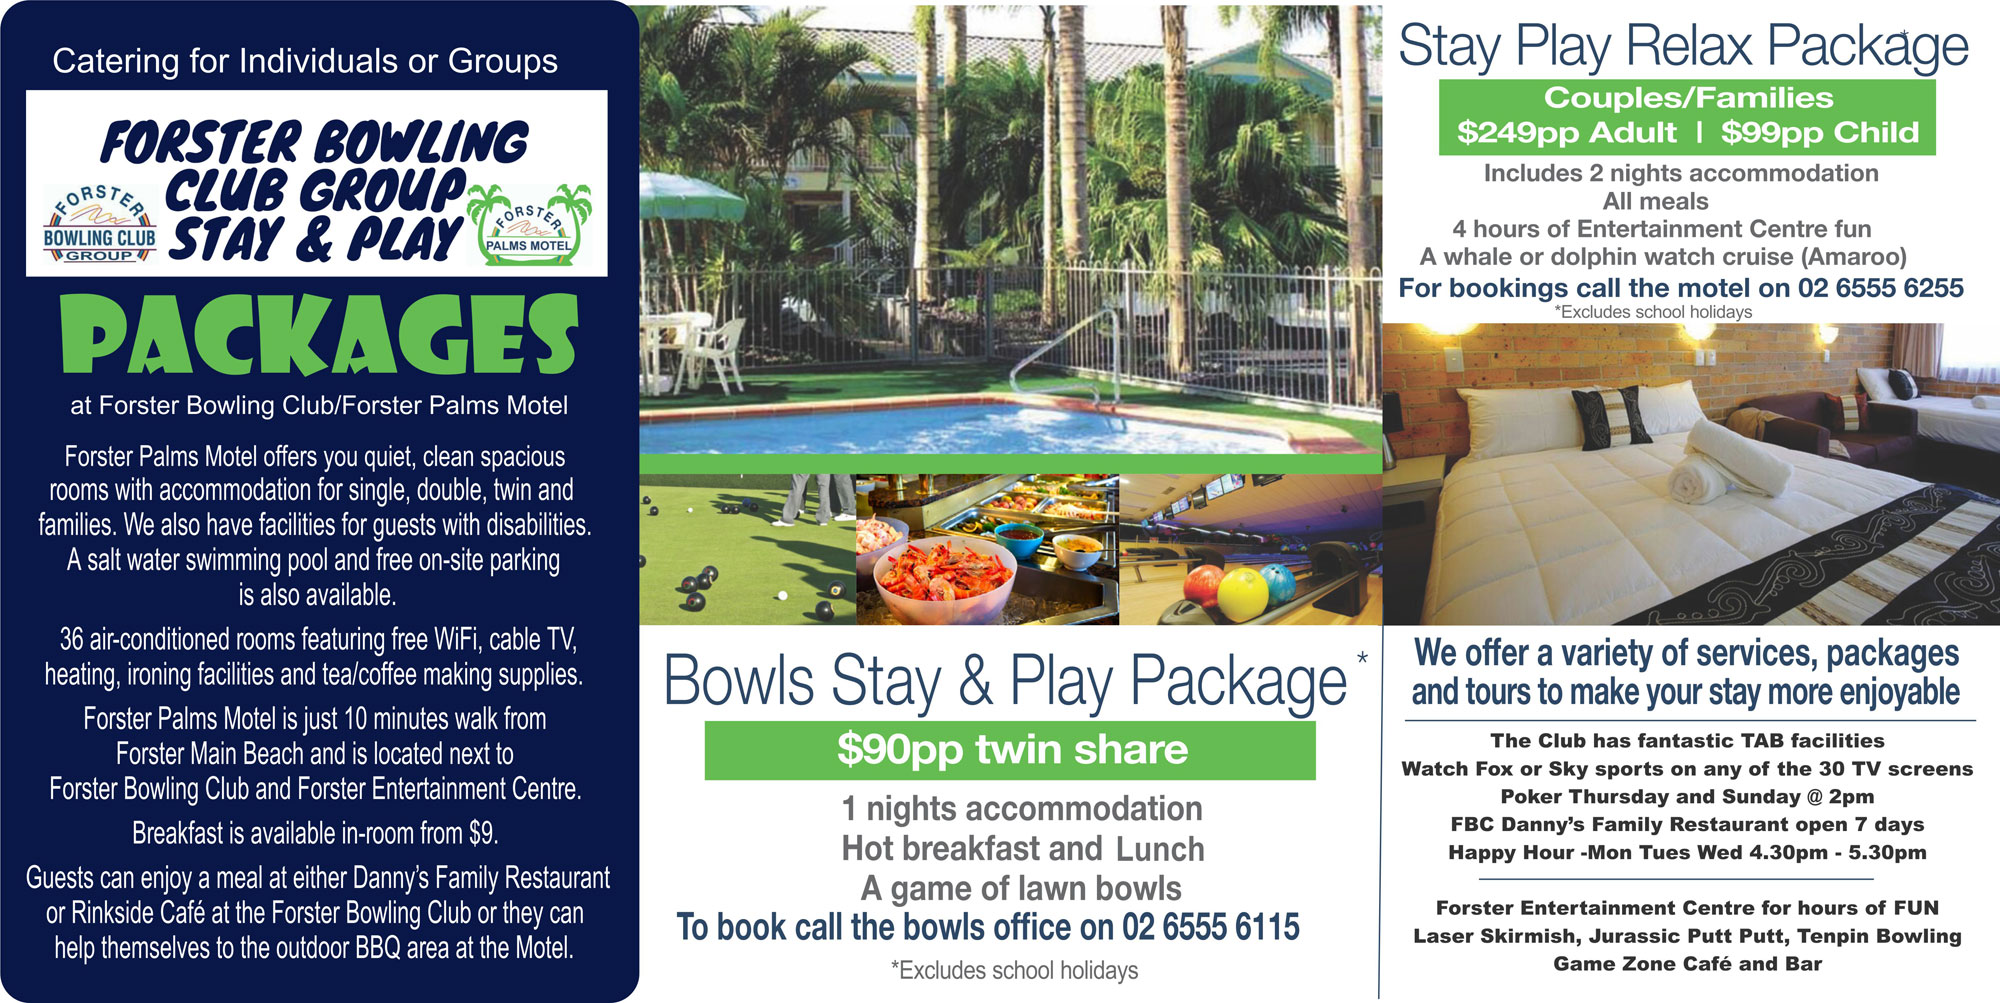 Forster Bowling Club Group - Stay & Play Packages 2018